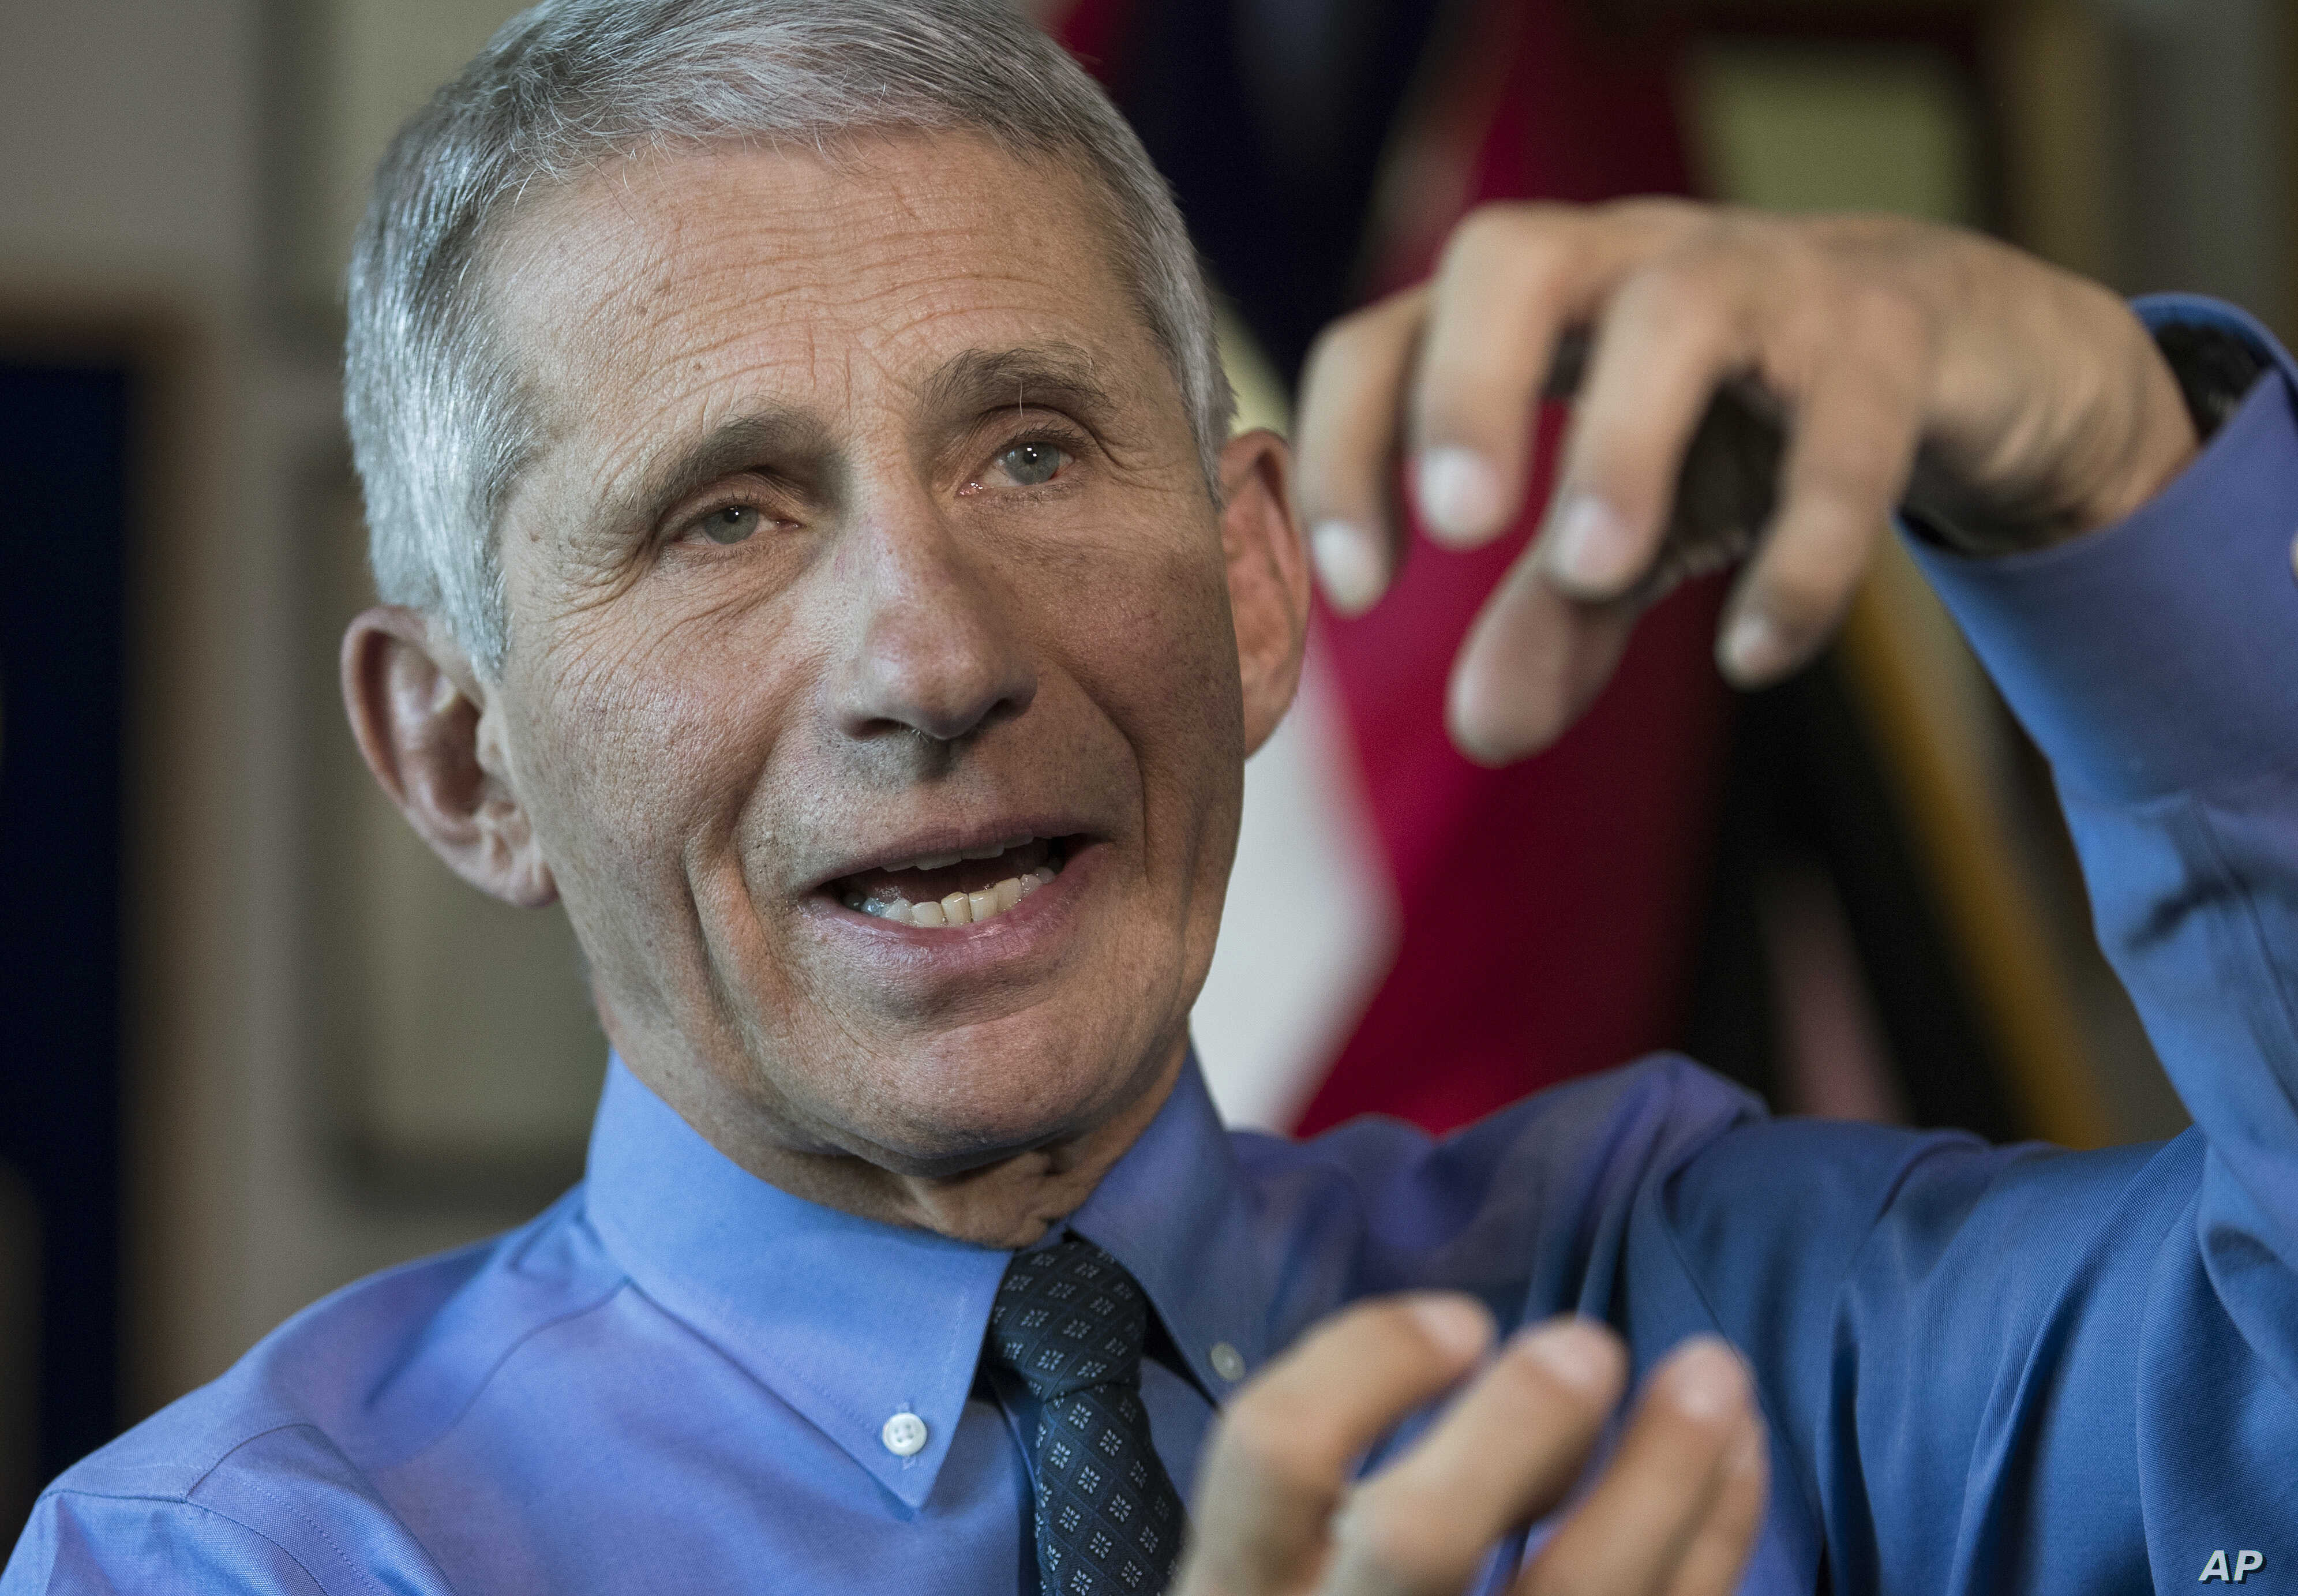 FILE - Dr. Anthony Fauci, director of the National Institute for Allergy and Infectious Diseases, speaks during an interview in his office at the National Institutes of Health in Bethesda, Maryland, Dec. 19, 2017.